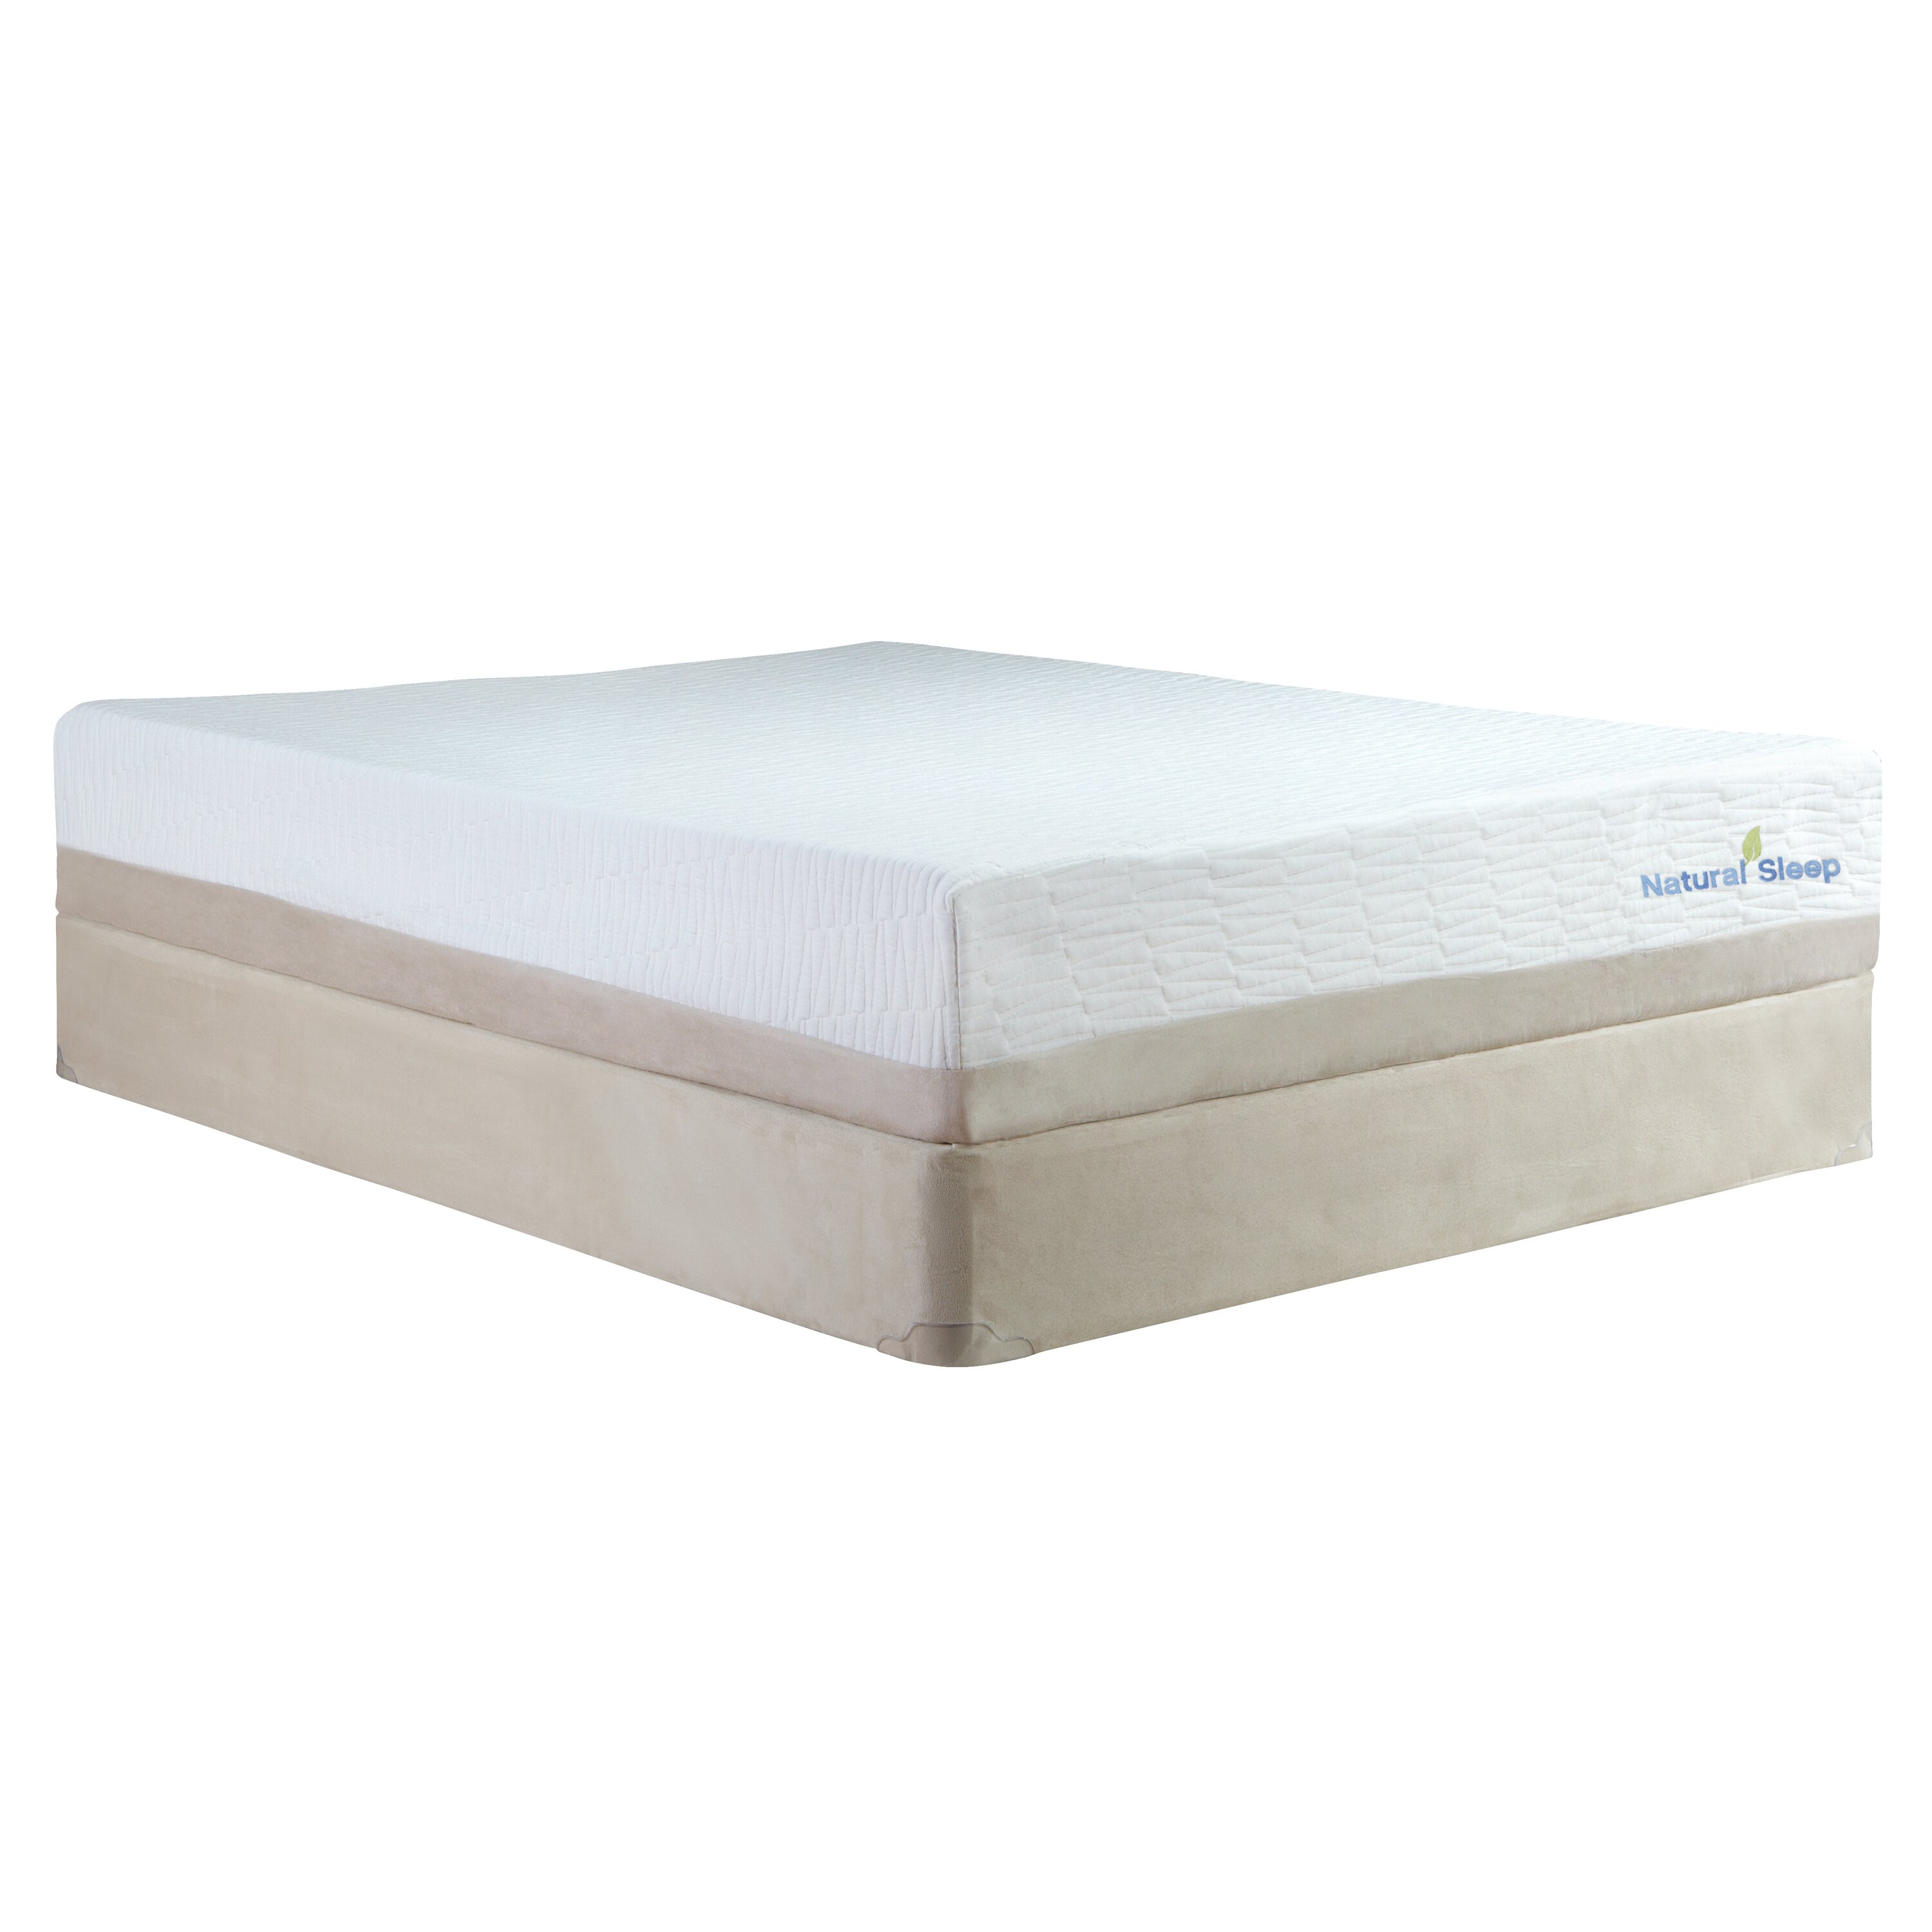 "Classic Brands Natural Sleep 11"" Latex Foam Mattress"